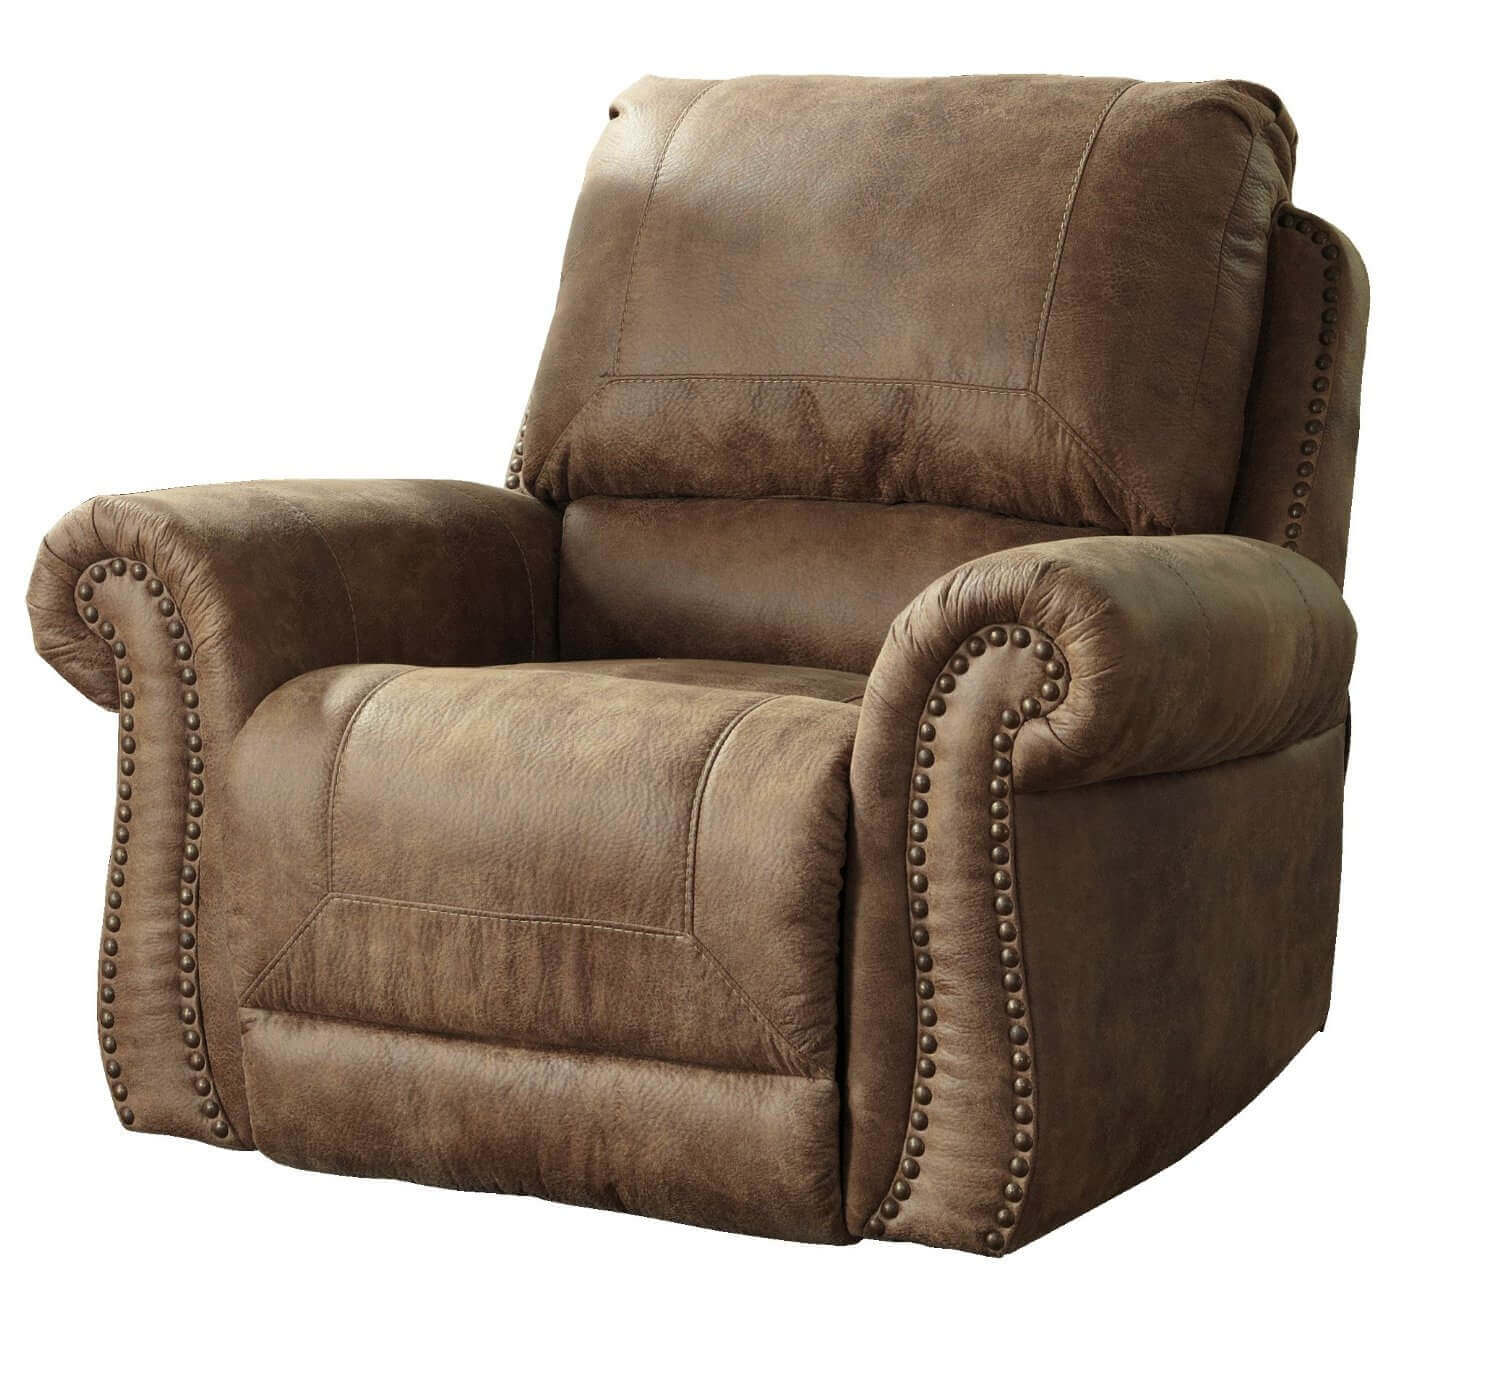 comfortable flooring modern placed recliner on comforter wooden big design recliners brown the natural back most velvet with